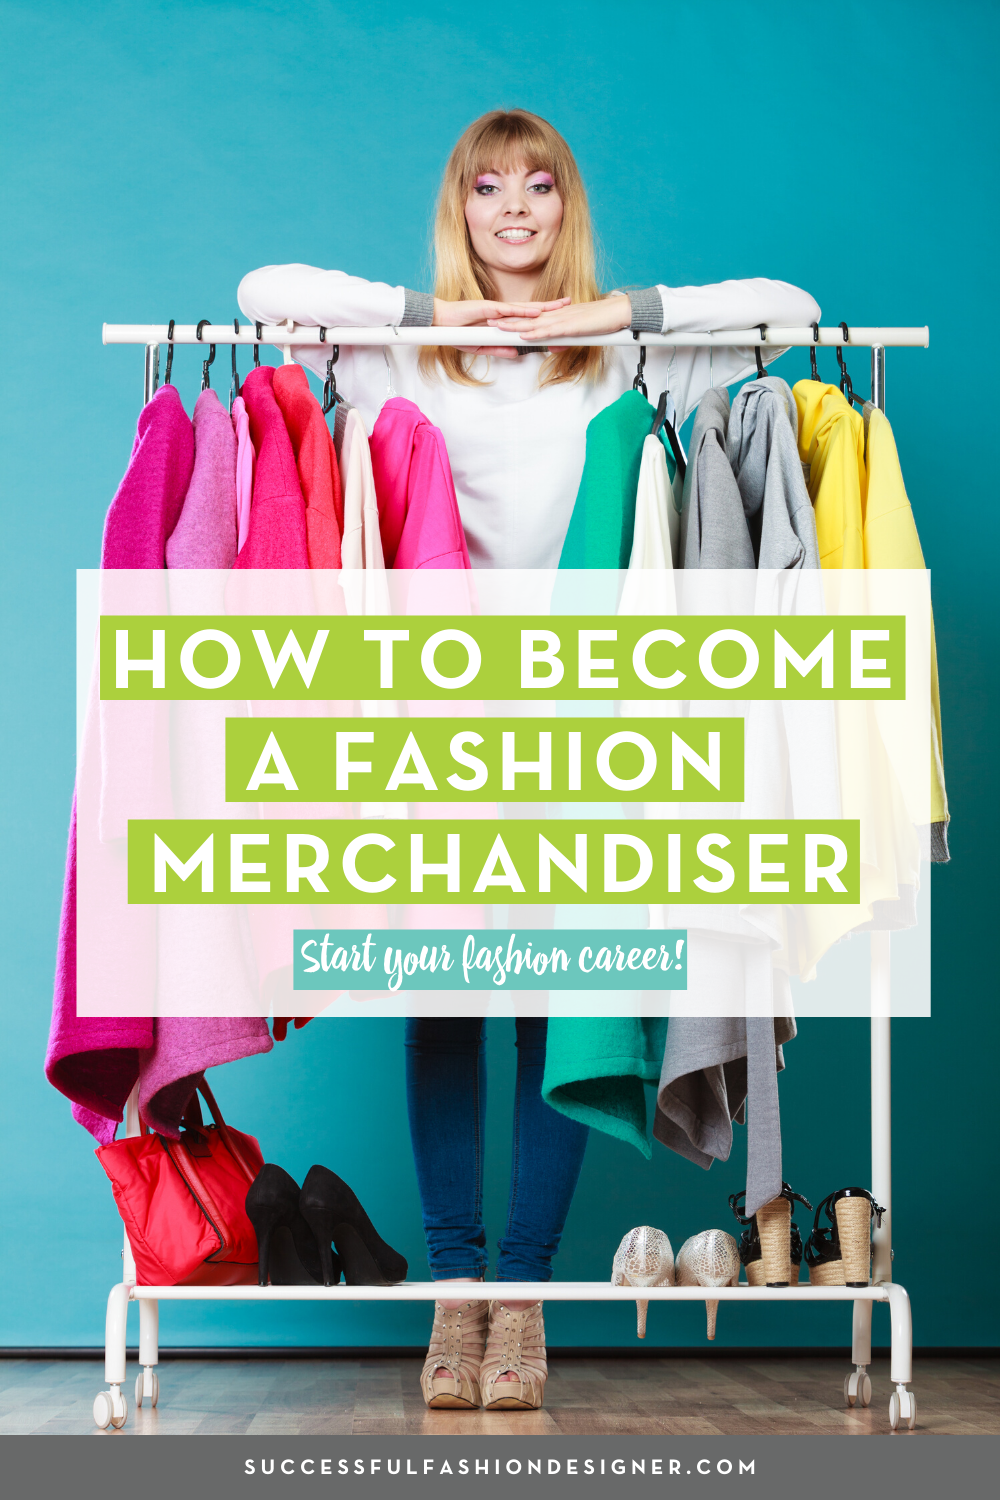 Fashion Industry Career How To Become A Merchandiser Career In Fashion Designing Fashion Consultant Stylists Fashion Design Portfolio